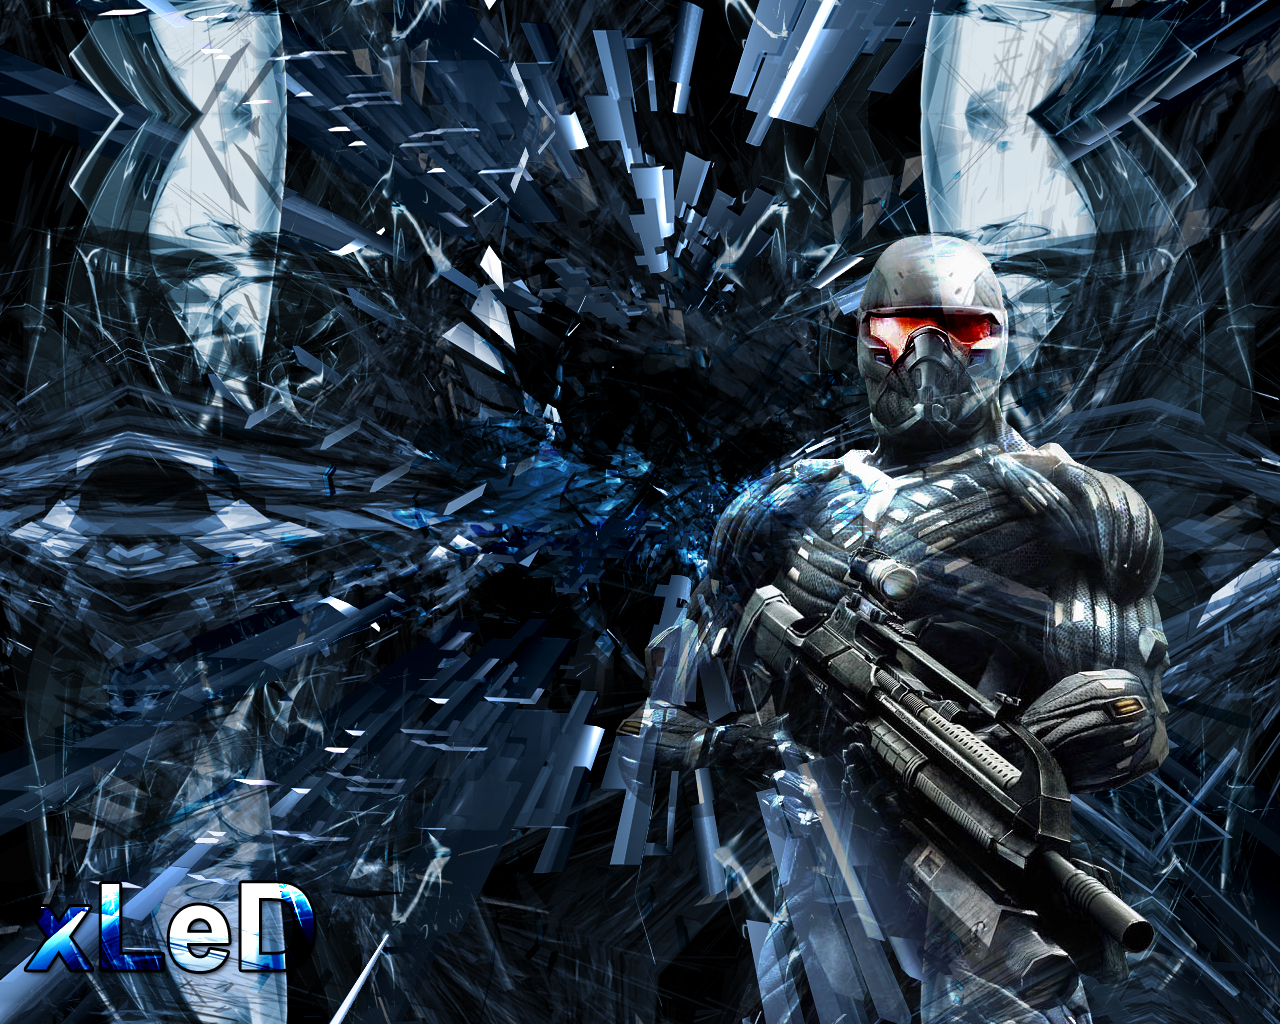 crysis wallpapers wallpapersafari